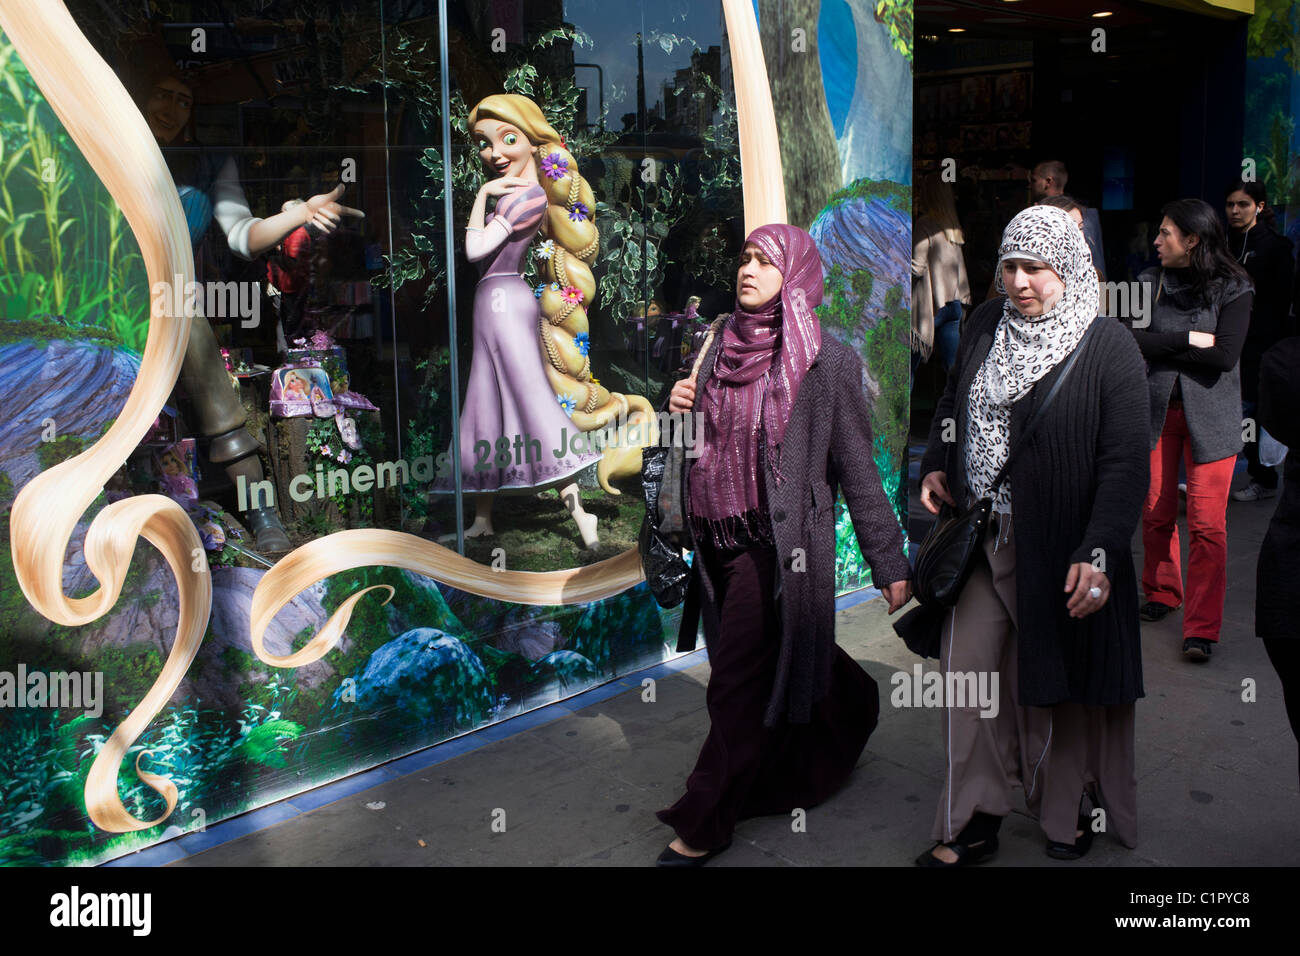 Disney character Rapunzel from their film Tangled stands looking at Muslim women, exemplifying feminine beauty. Stock Photo